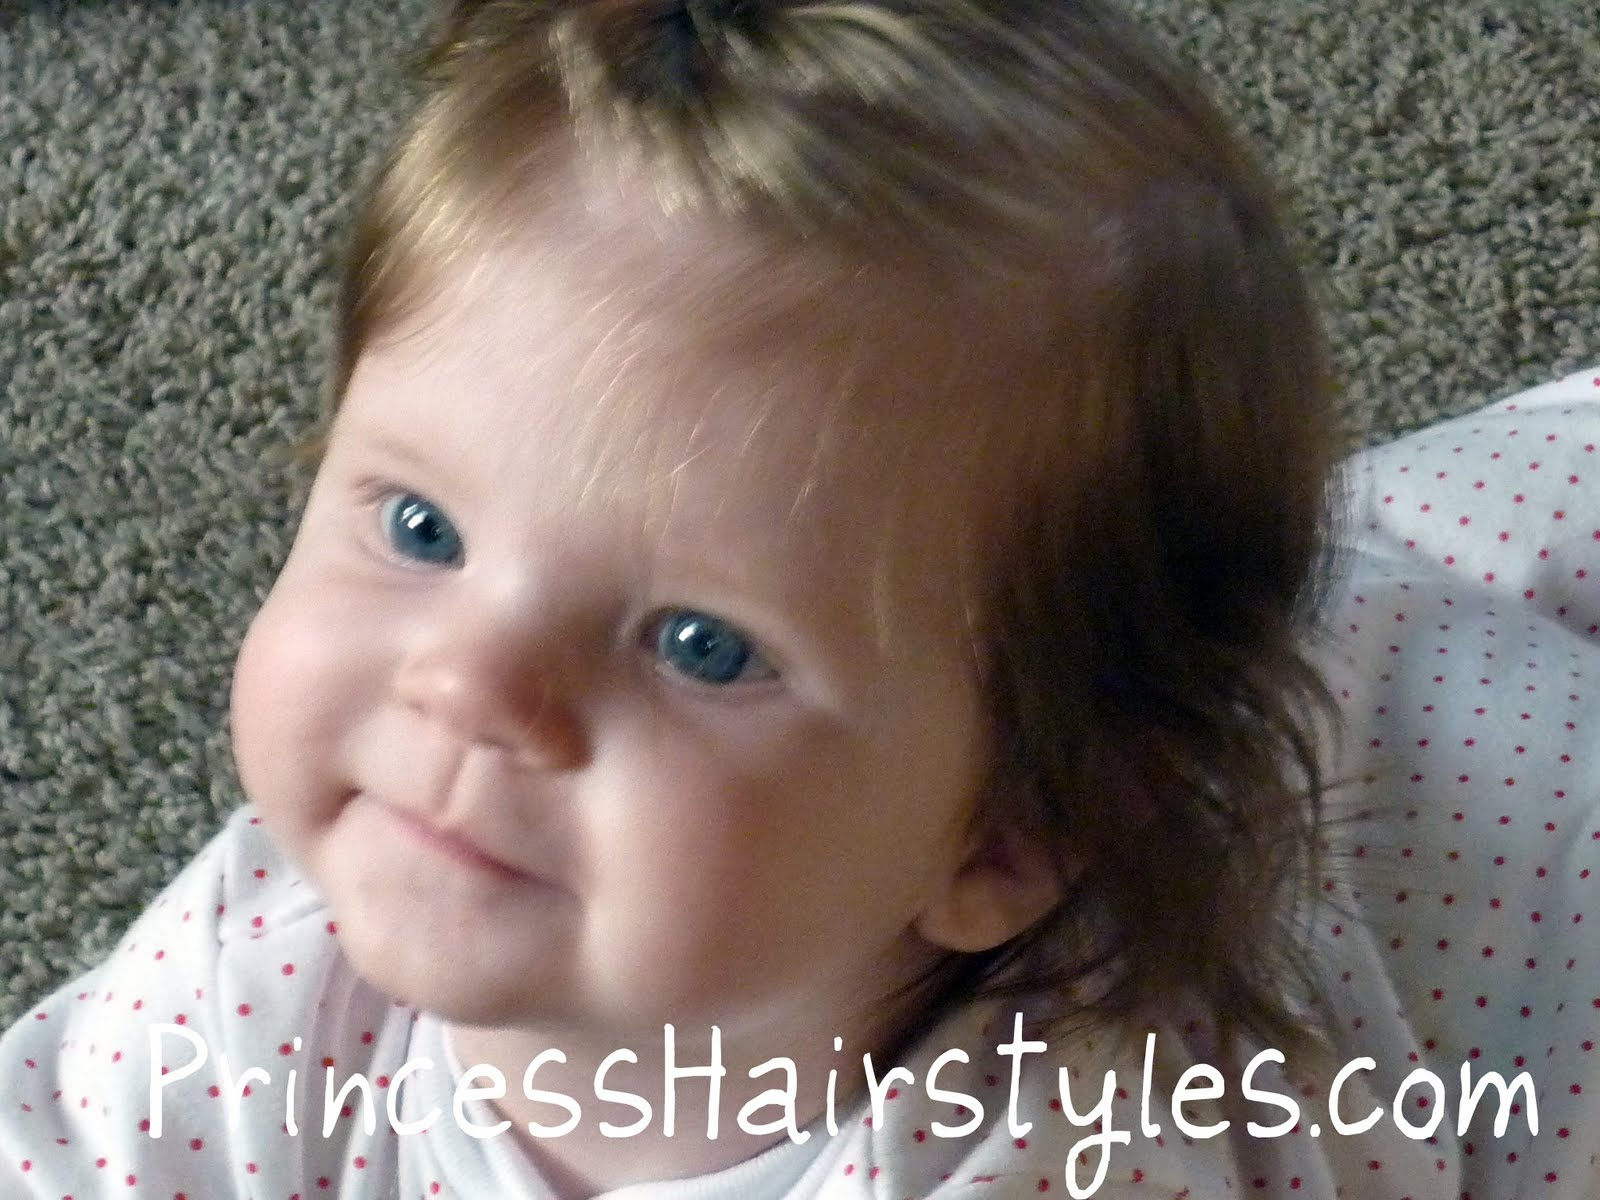 Baby Hairstyles - Tiny Twists | Hairstyles For Girls - Princess ...